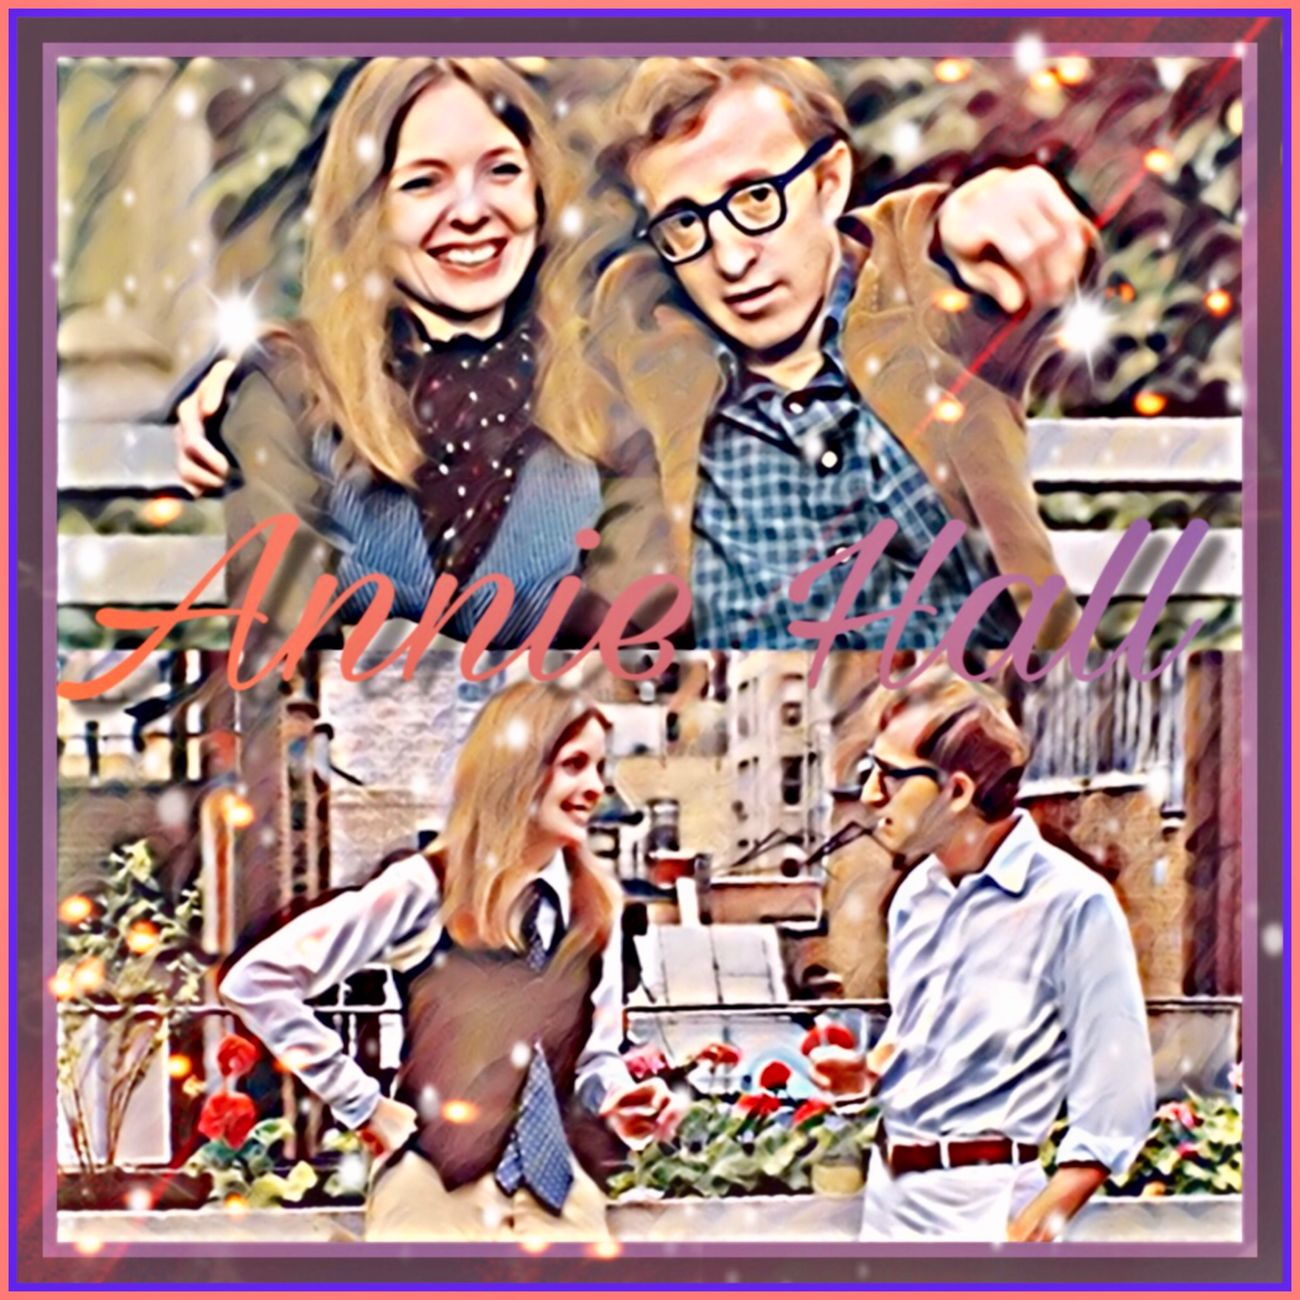 Watched this one after Breakfast at Tiffany's 💚💙💜 Anniehall Moviebinge Vintage Photo Classics Celebrities Woody Allen Diane Keaton Moviebinge Picsart